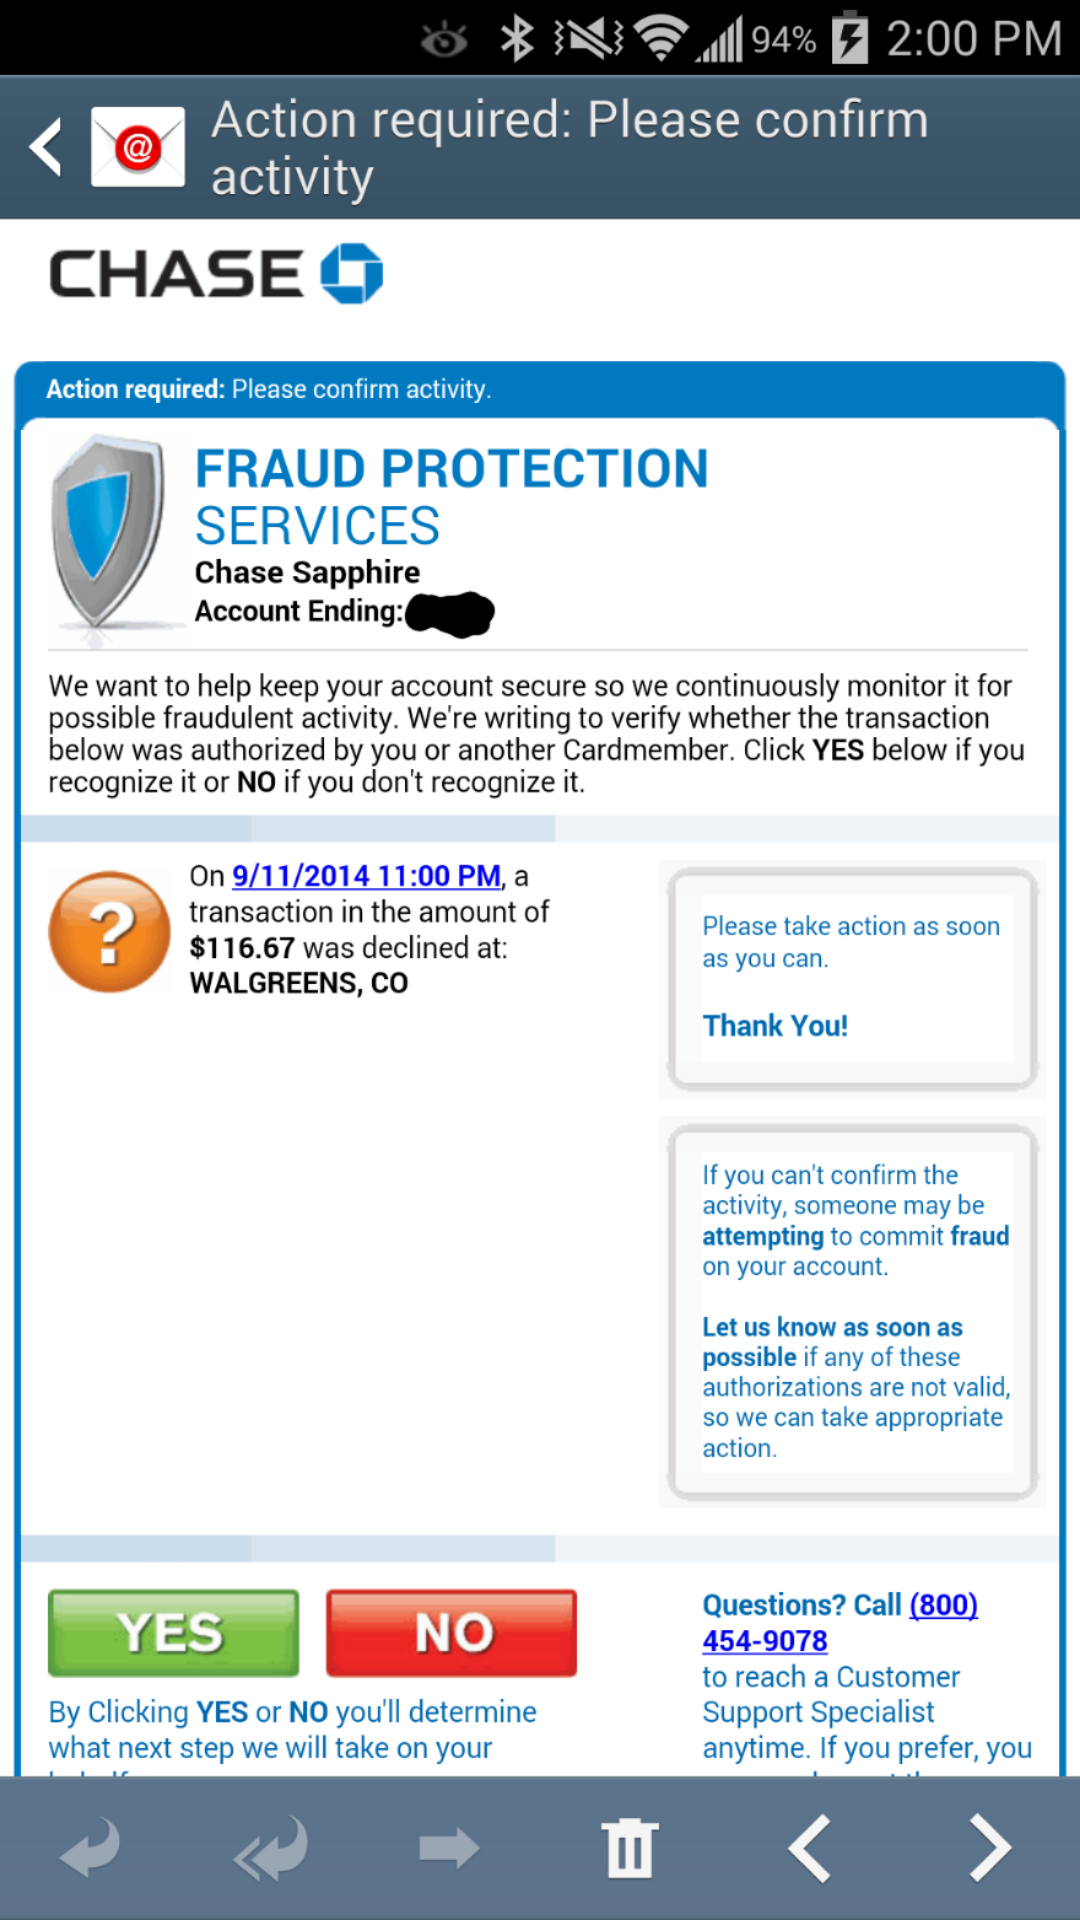 chase sapphire credit fraud alert - myfico® forums - 3432155